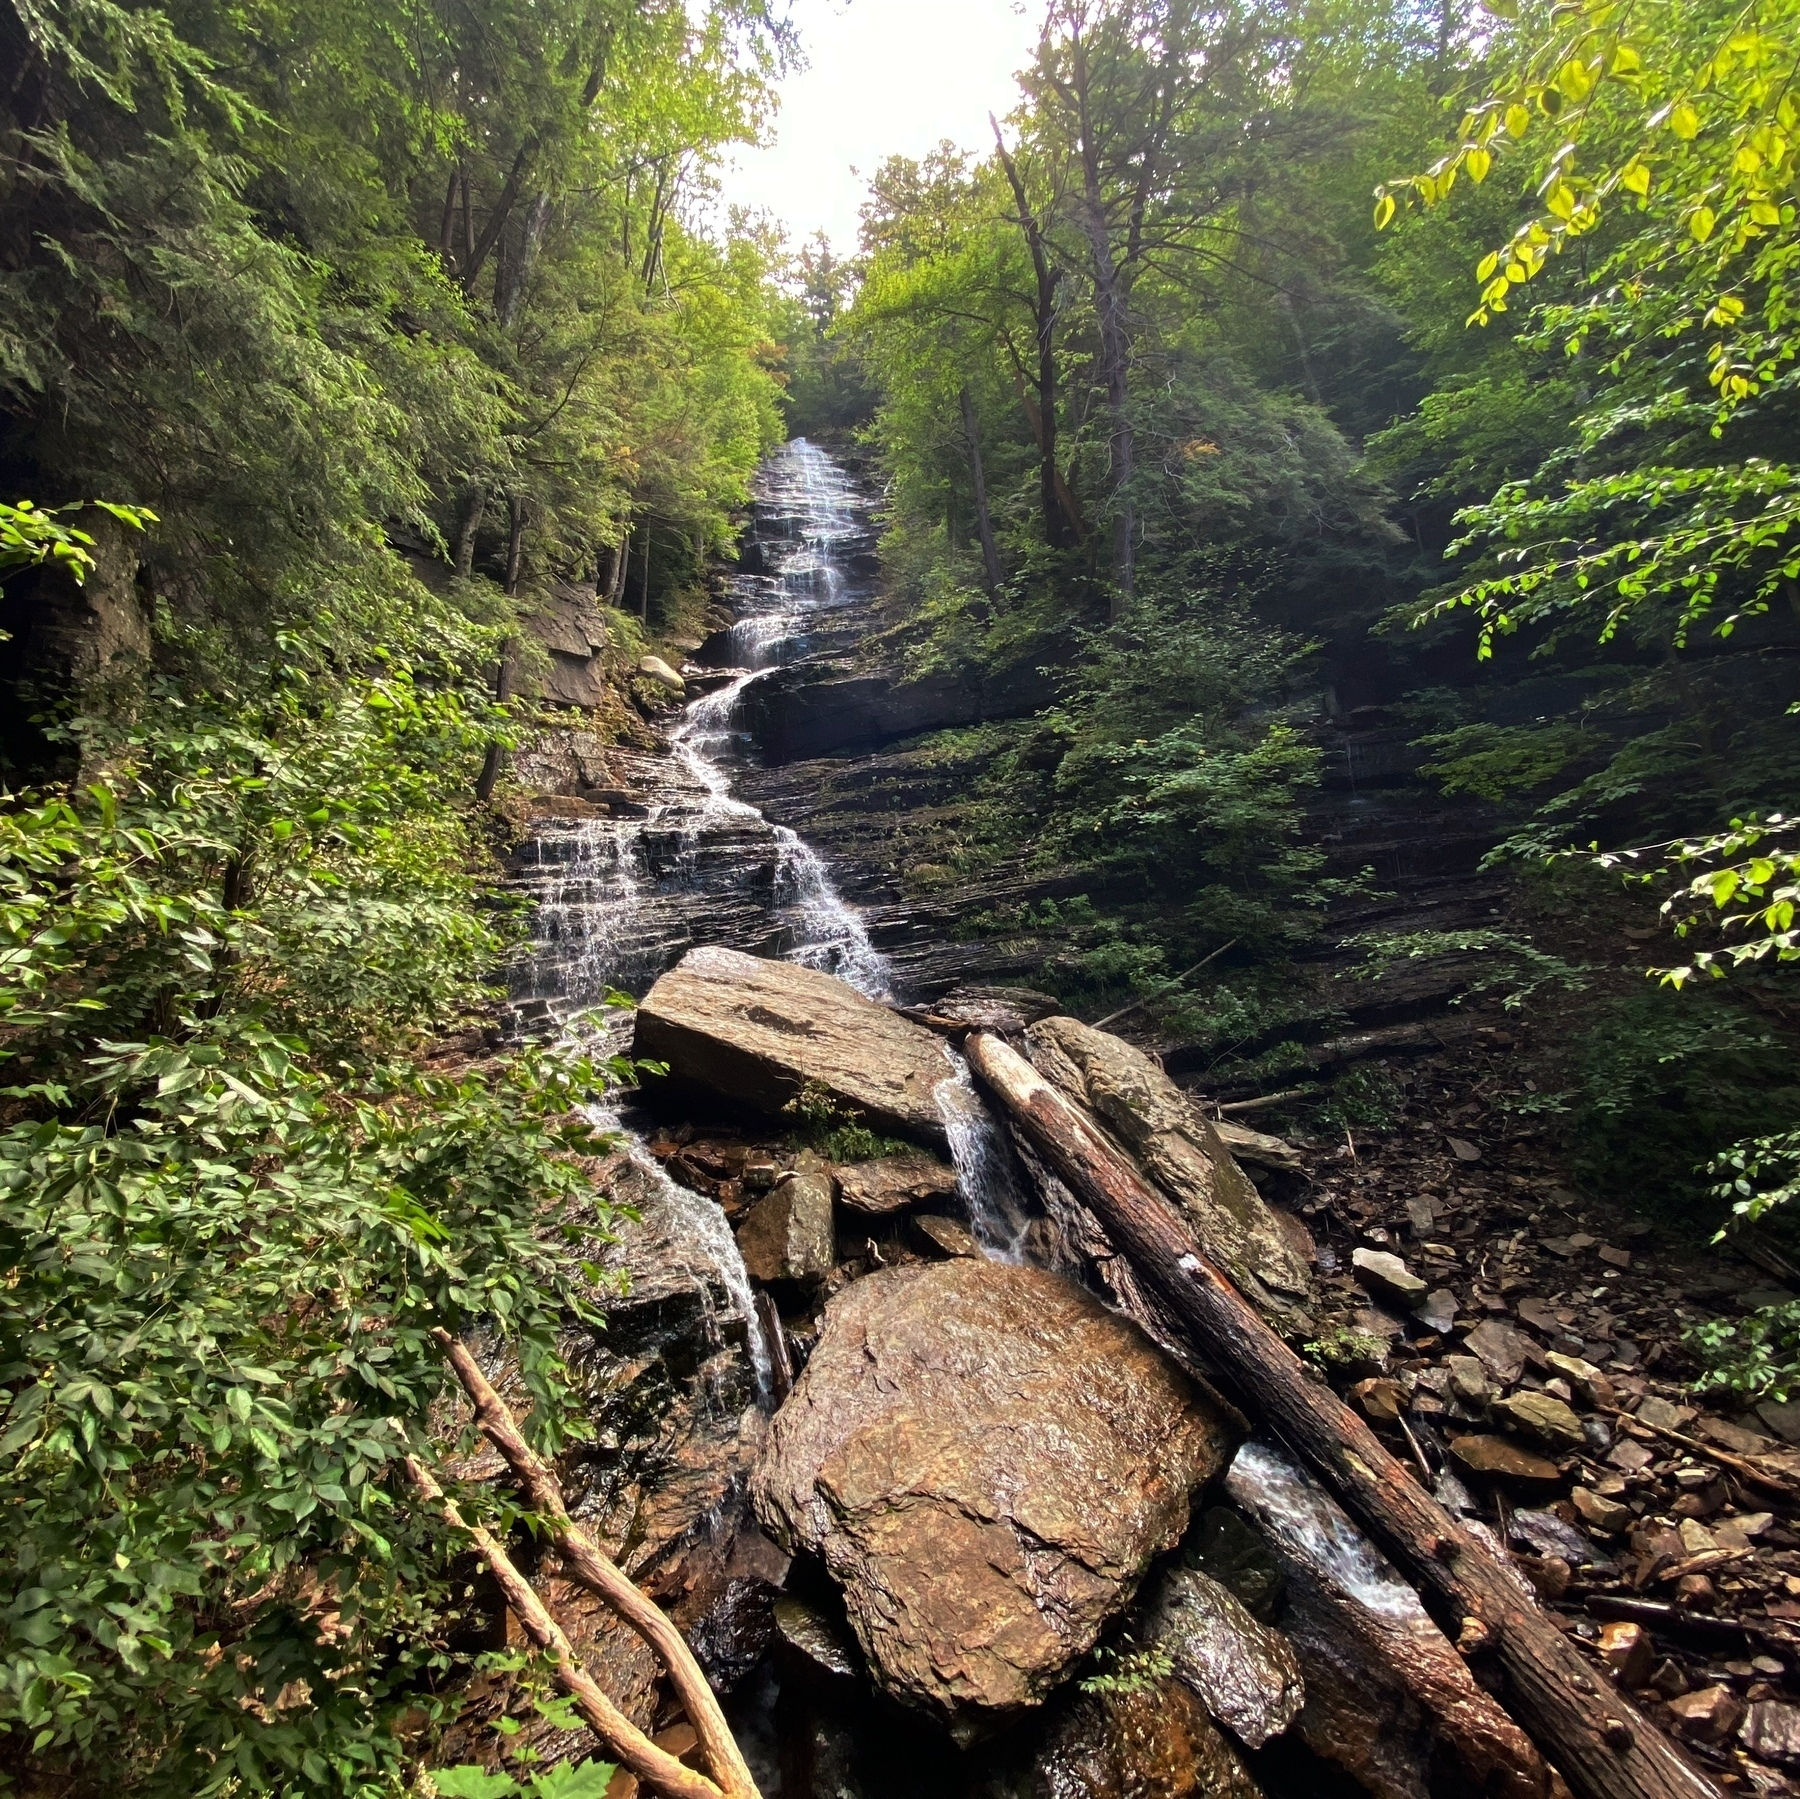 A tall waterfall comes down over rocks, with woods on both sides